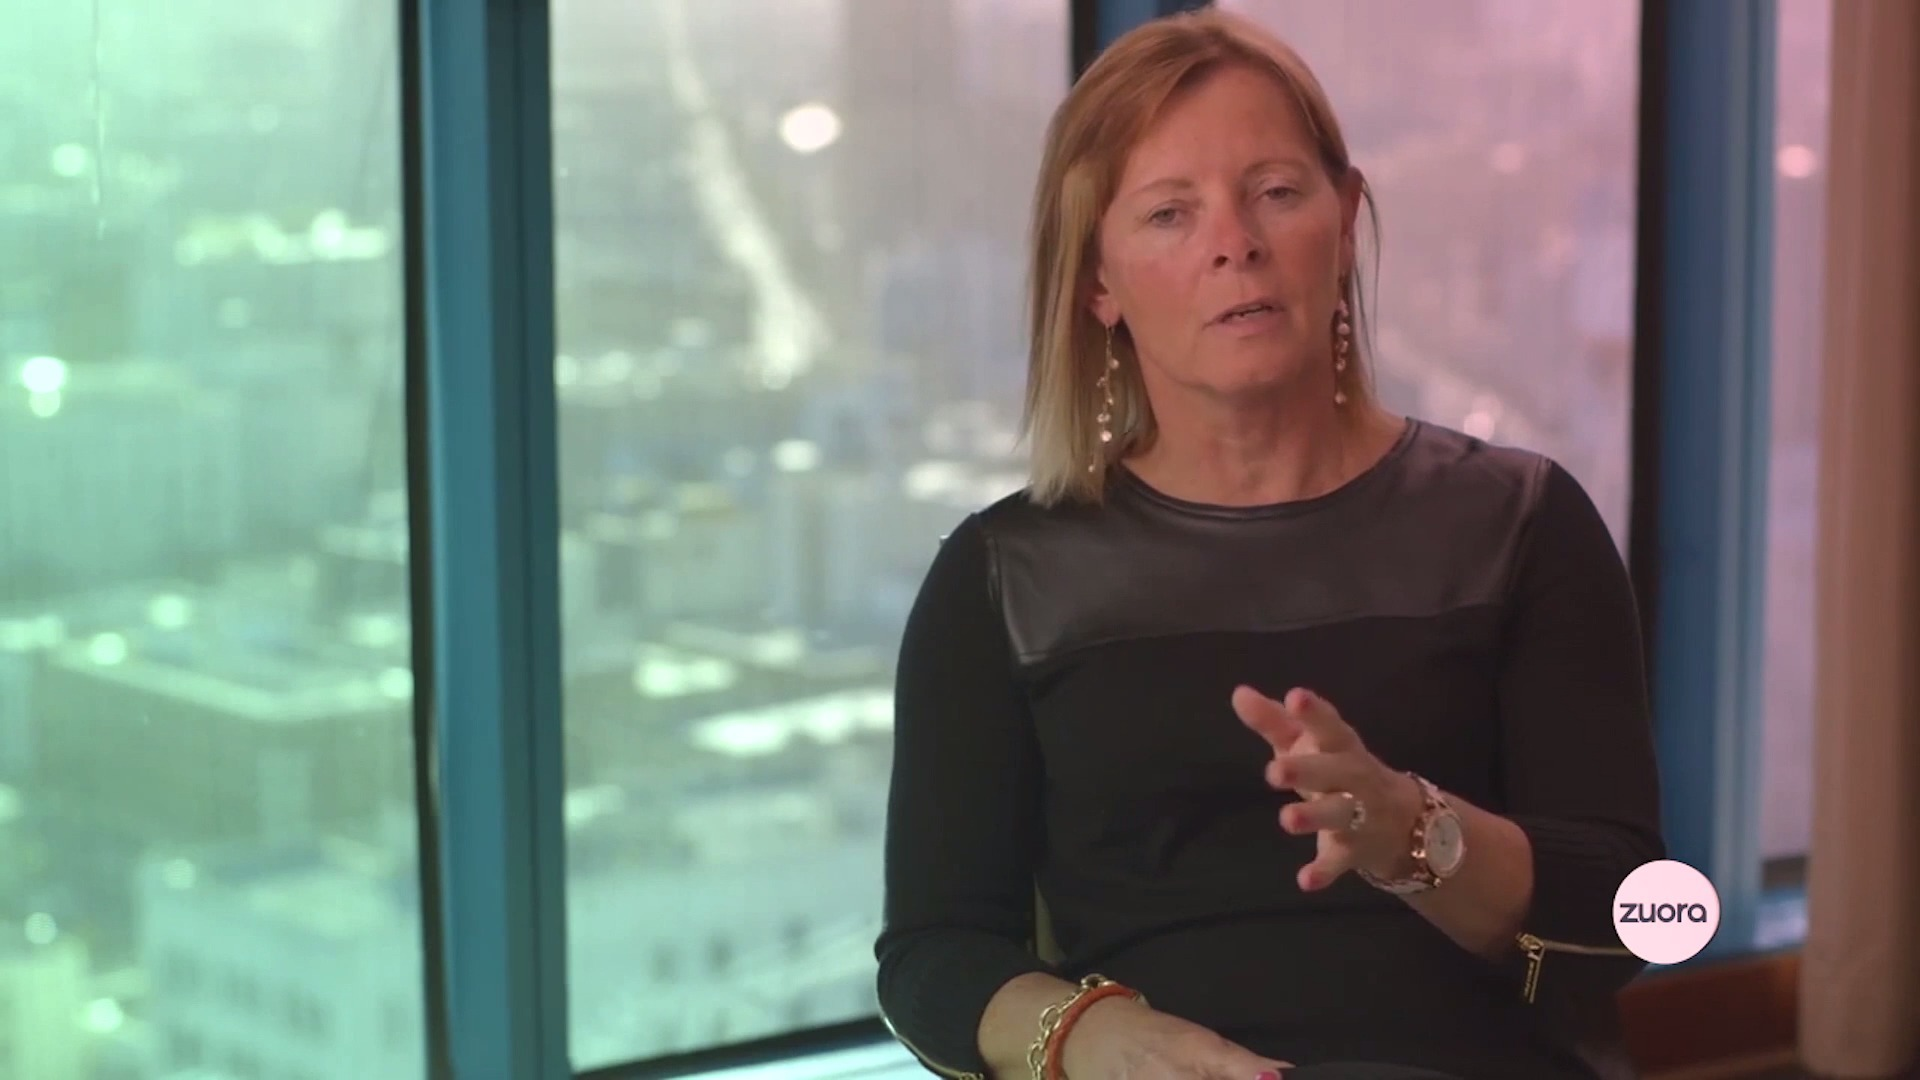 xplornet case study zuora we ve had significant growth year over year since we implemented zuora cathy macdonald evp it